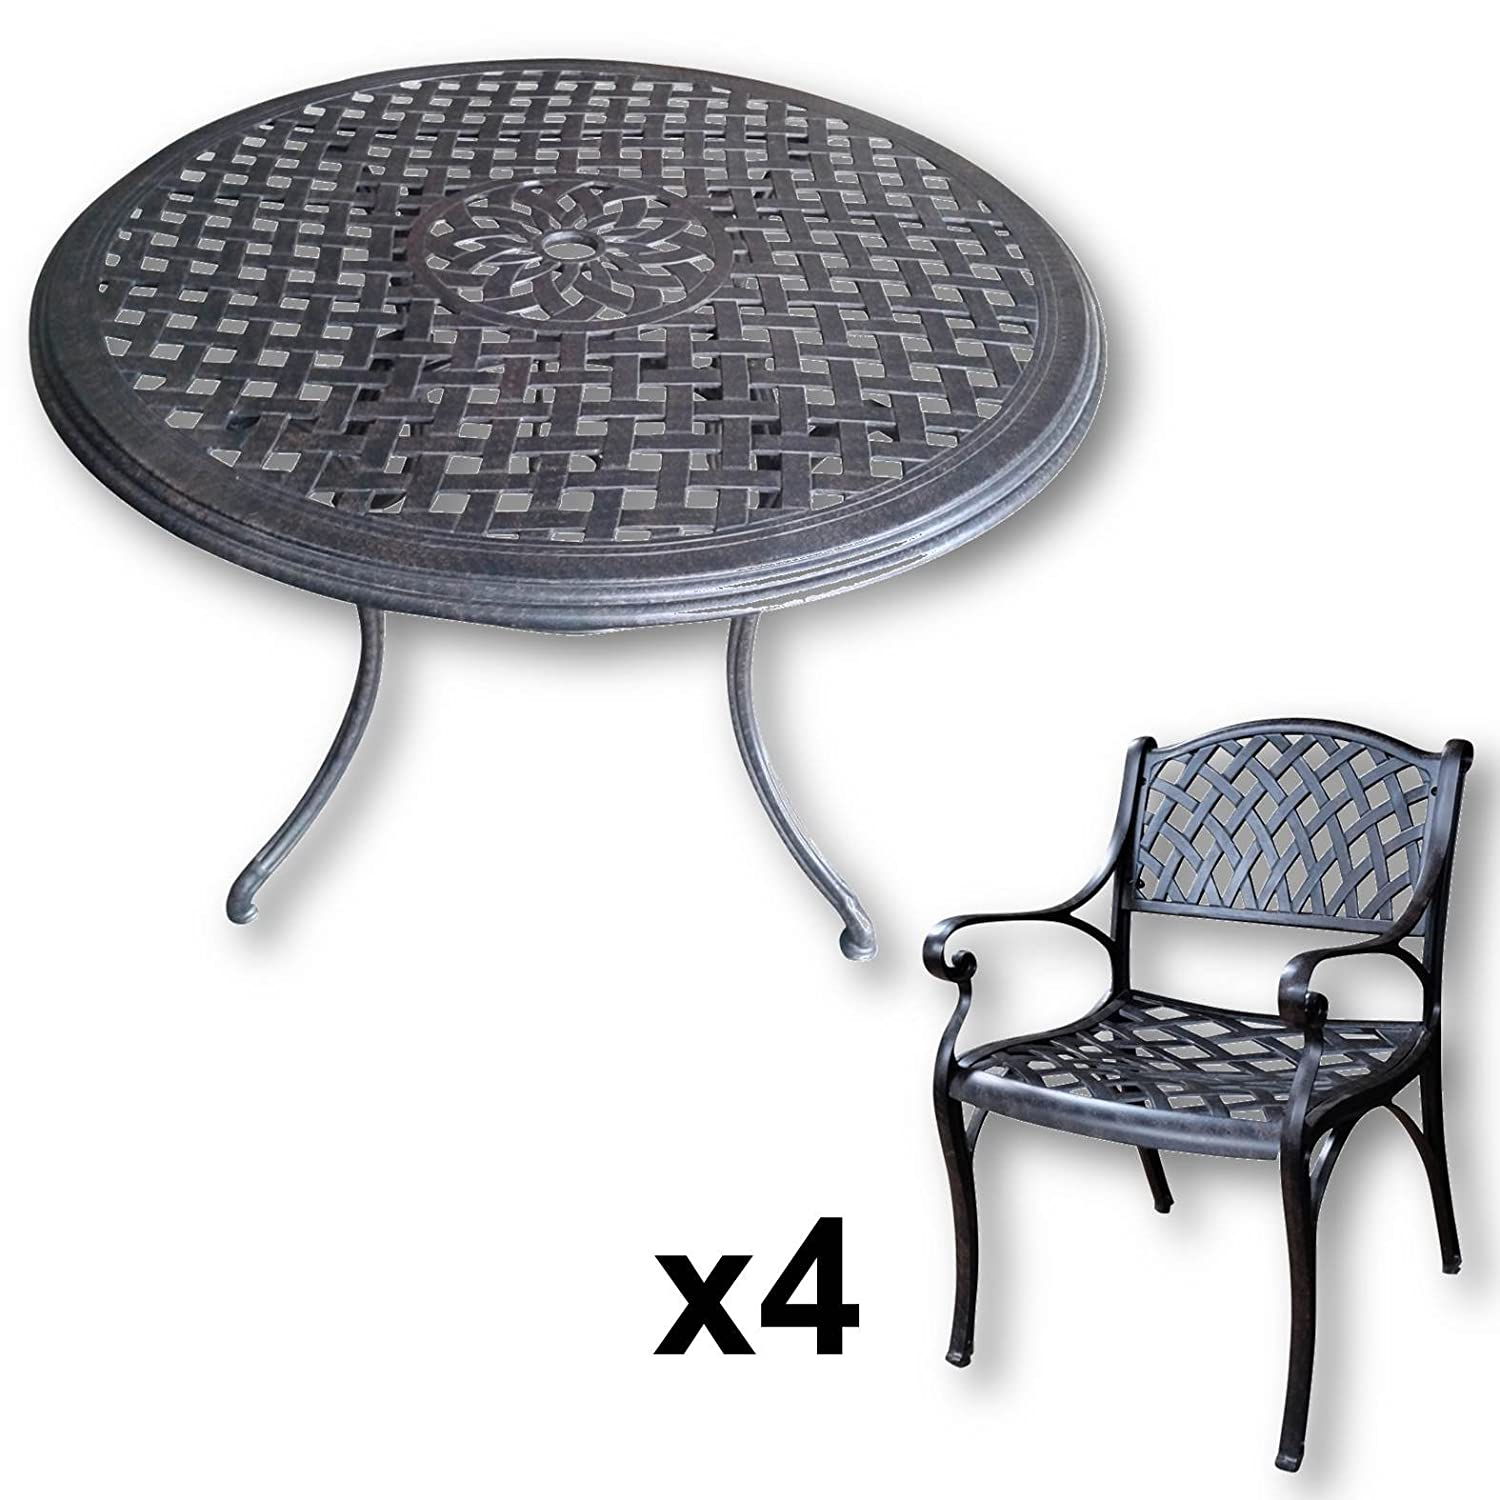 lazy susan lily 120 cm runder gartentisch mit 4 st hlen gartenm bel set aus metall antik. Black Bedroom Furniture Sets. Home Design Ideas